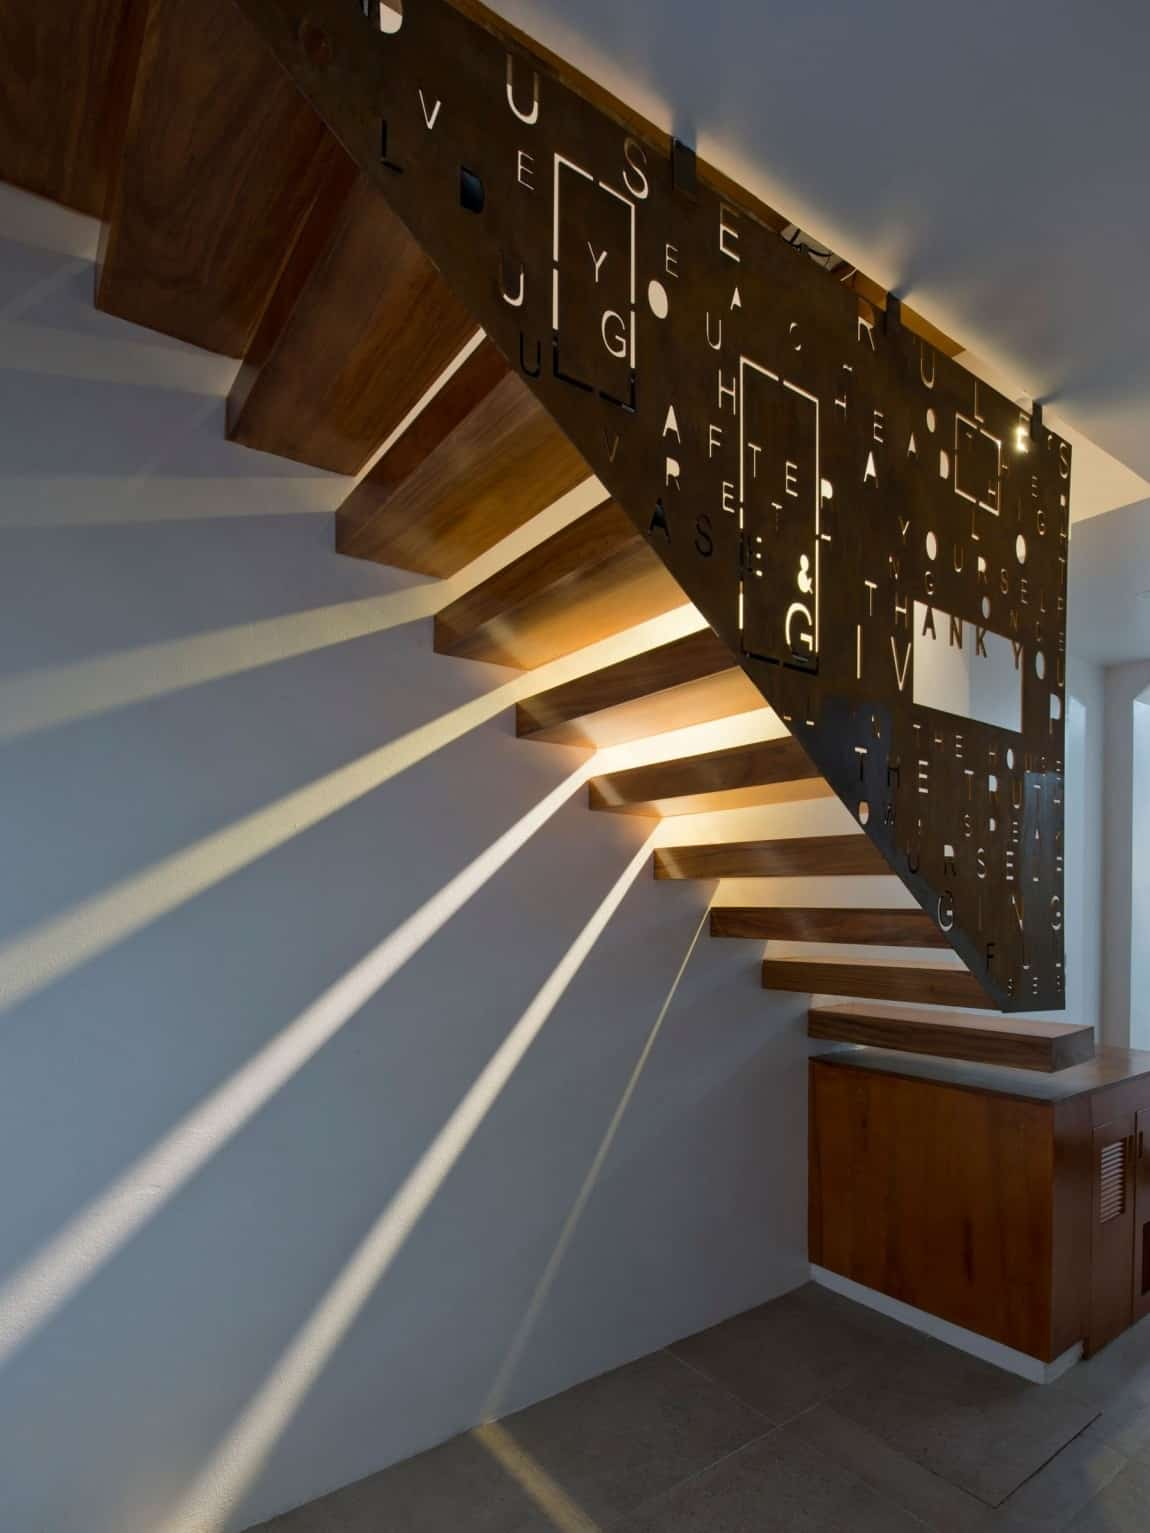 Four Storey Row House With An Amazing Stairwell